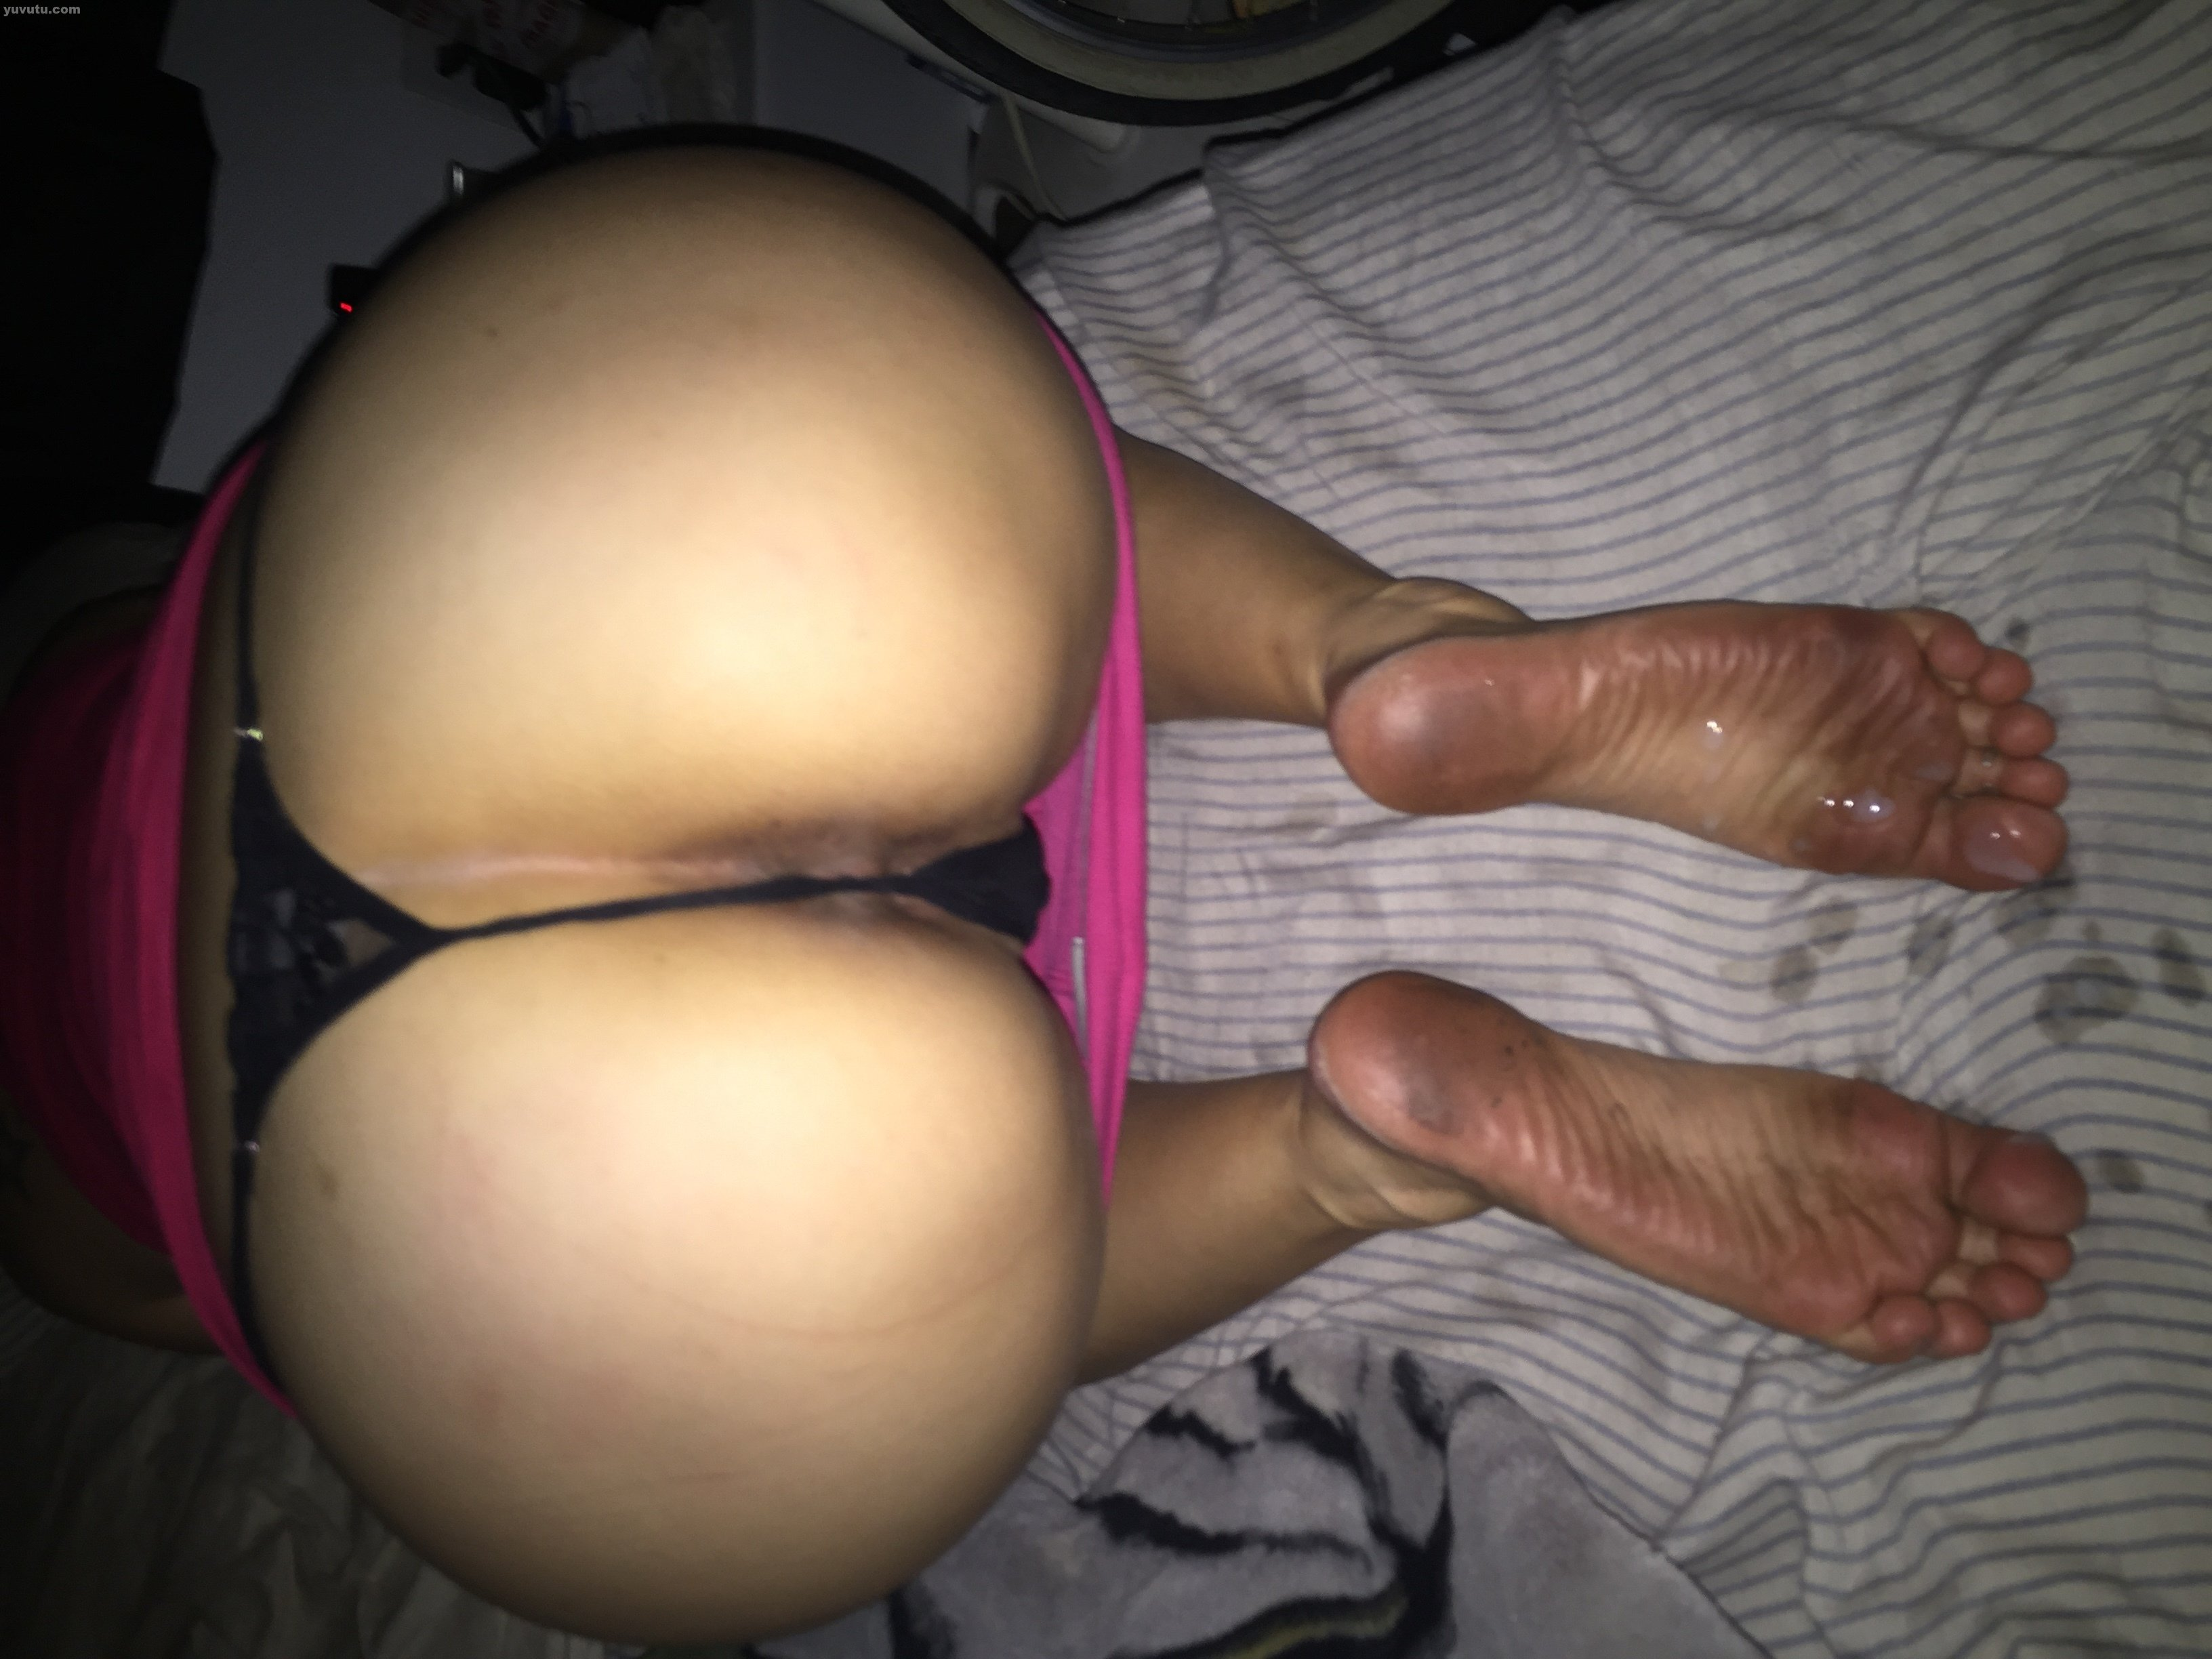 Asshole pics dirty 14 Perfectly